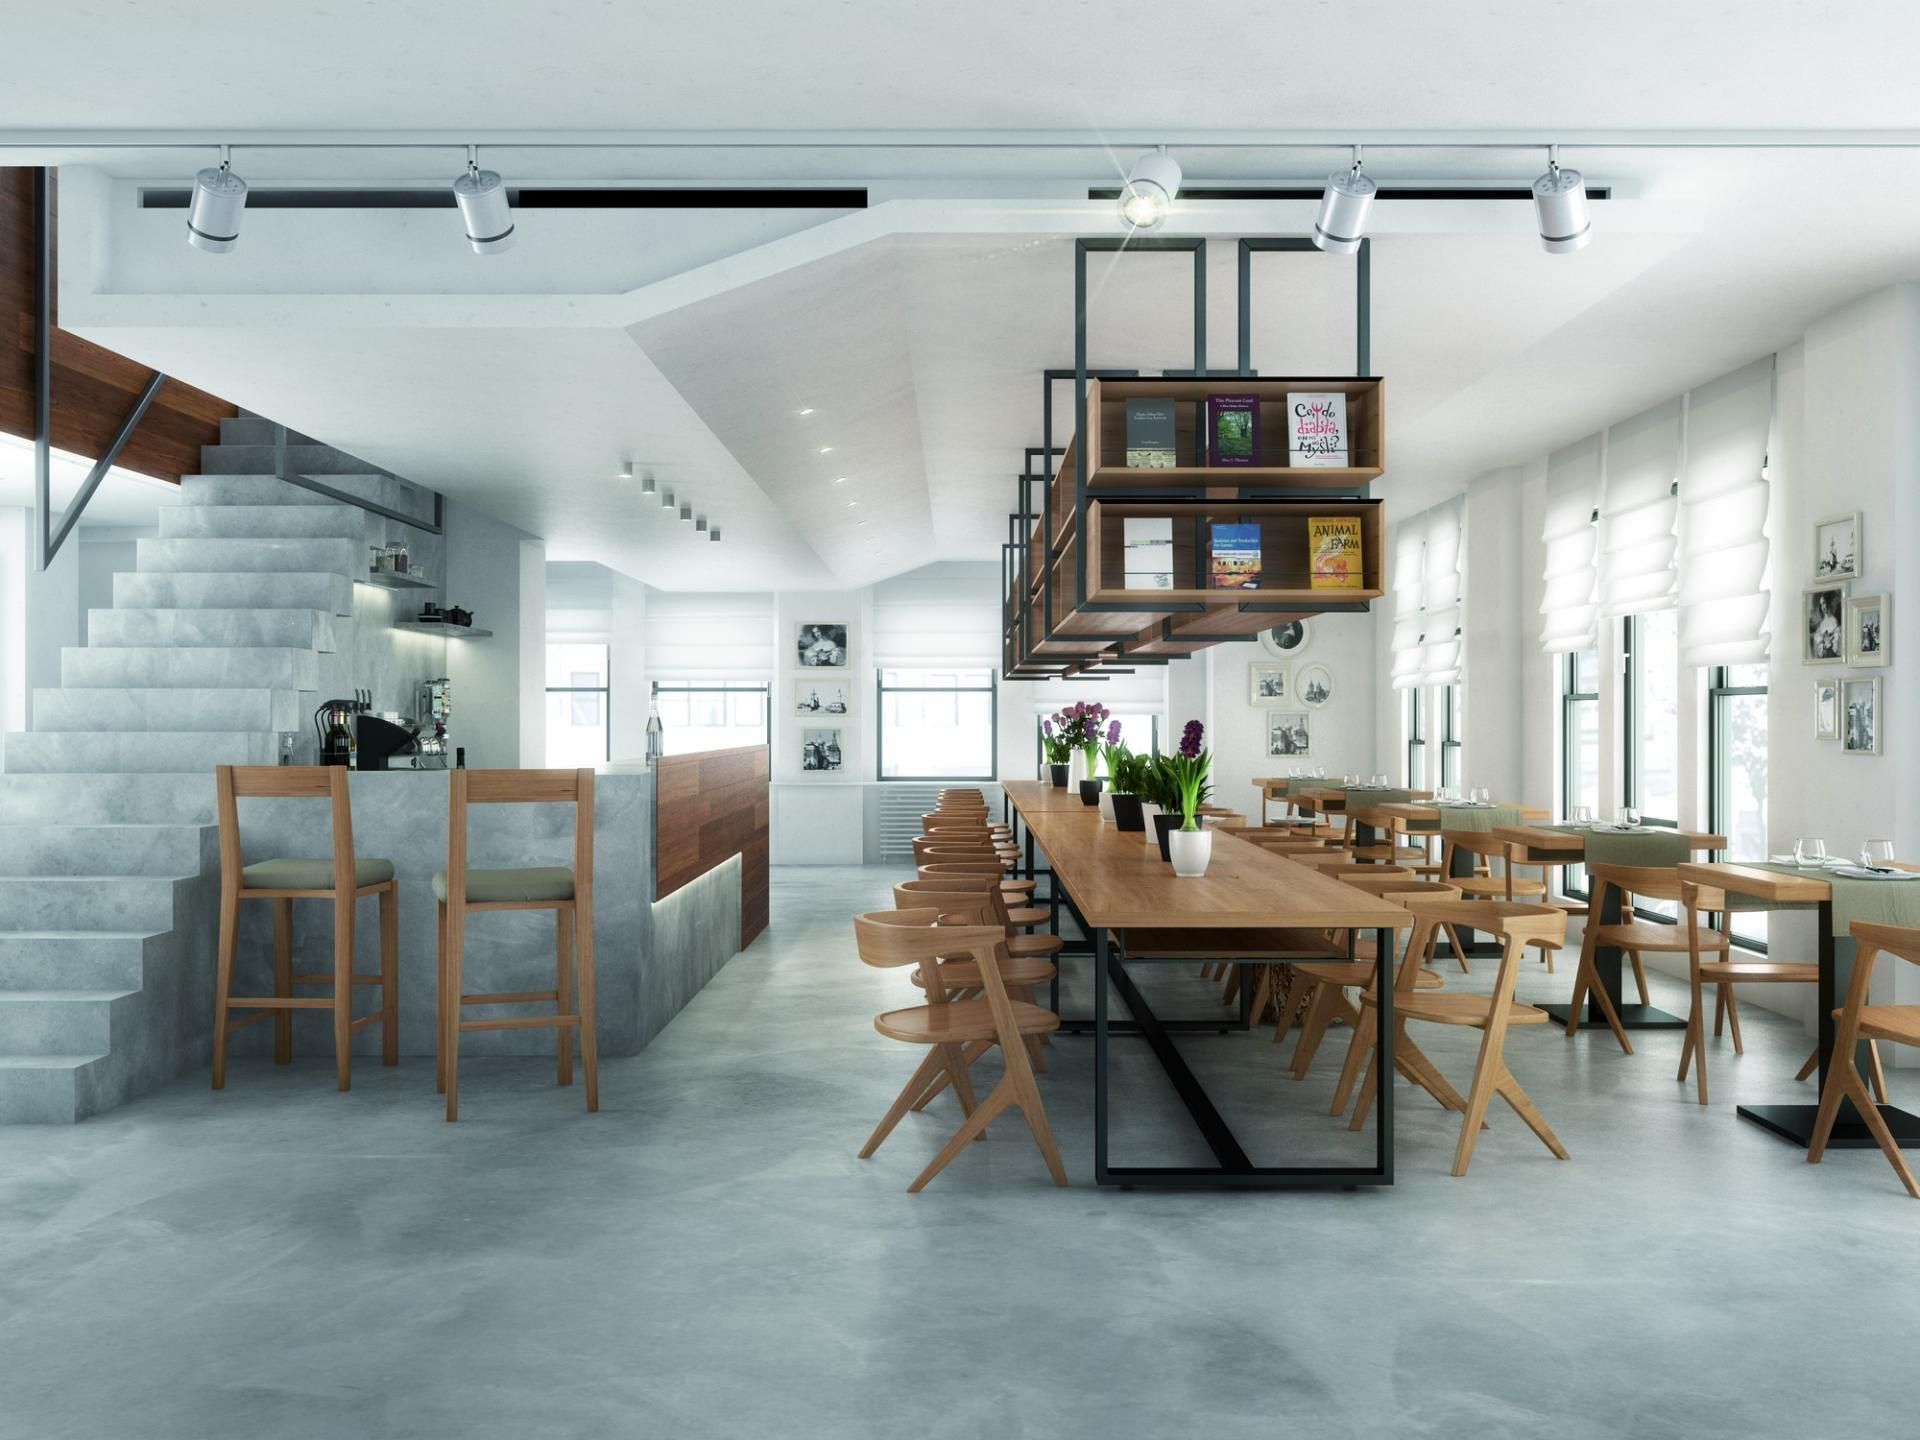 Mapei UK Has Launched Ultratop Loft F And Ultratop Loft W, A Highly  Decorative Cementitious Product That Can Be Used On Walls, Floors,  Staircases And Ramps ...